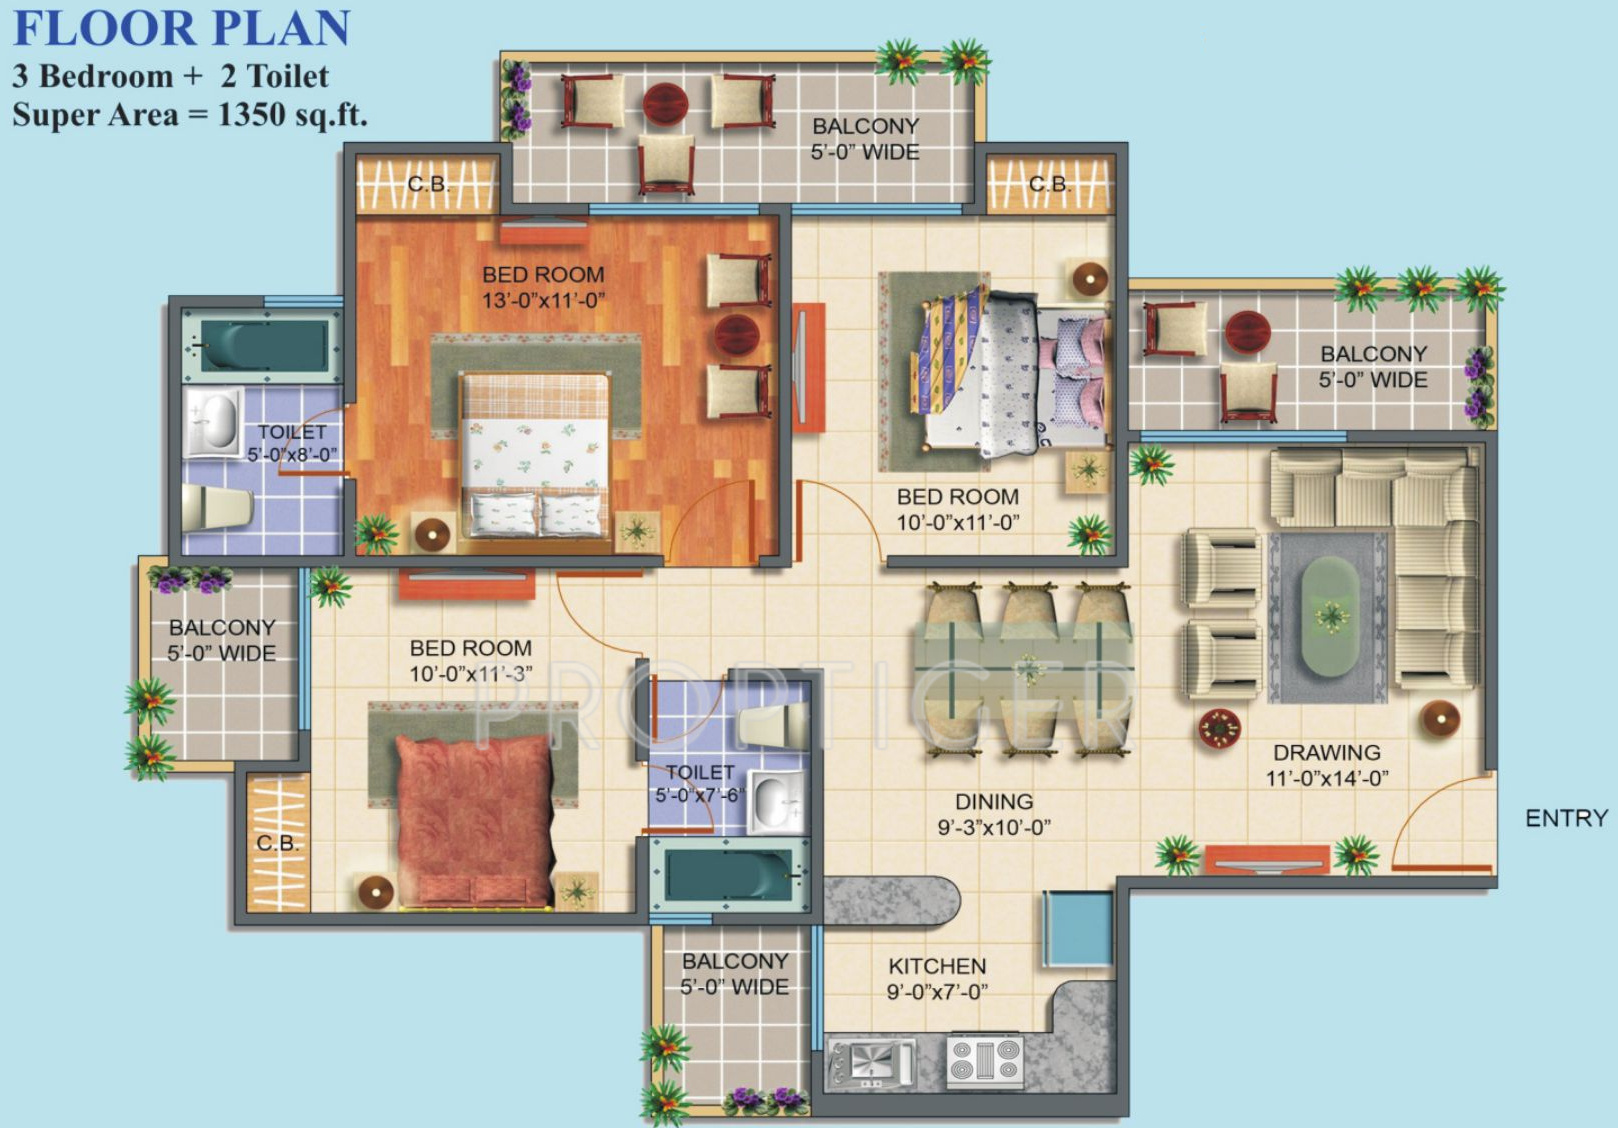 Maxblis White House II In Sector Noida Price Location Map - Floor plan for house 2